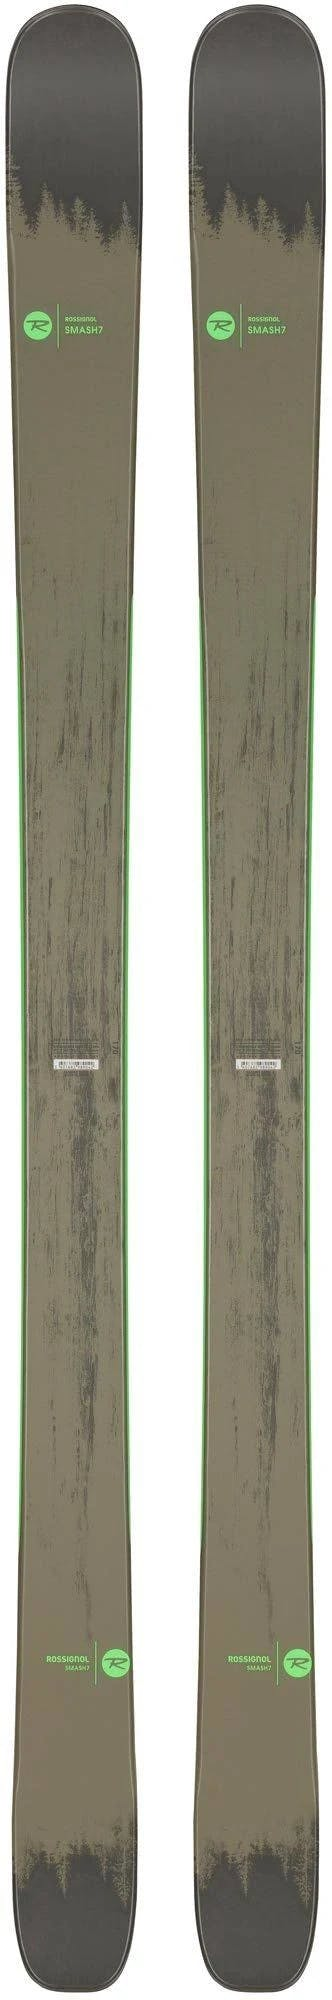 Rossignol Smash 7 Skis · 2020